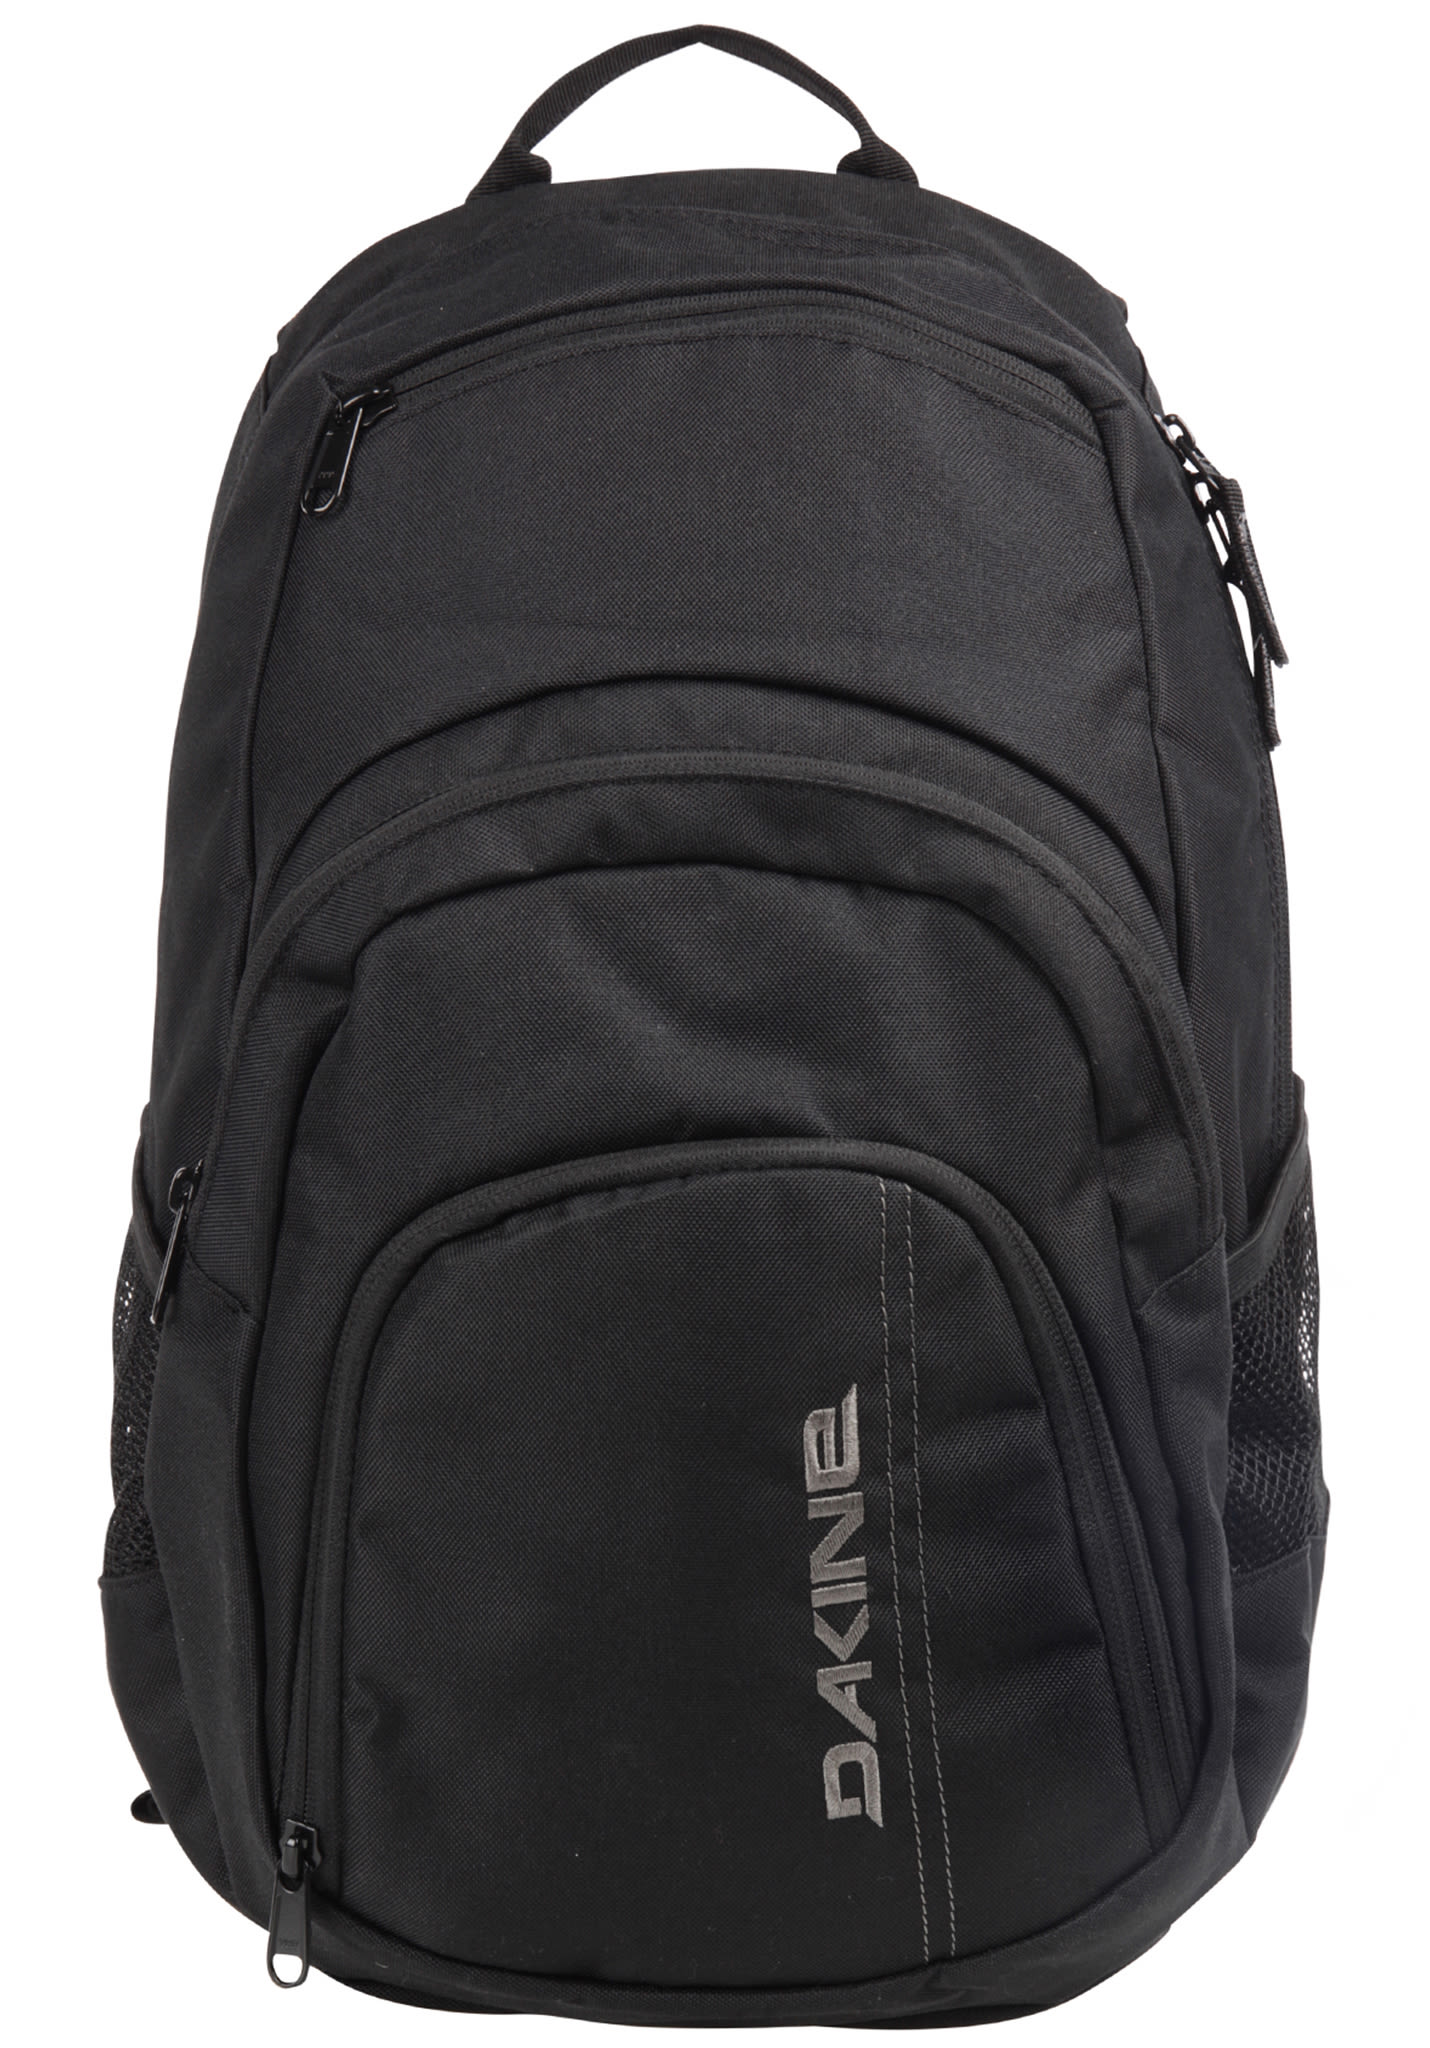 Dakine Campus 25L - Backpack for Men - Black - Planet Sports